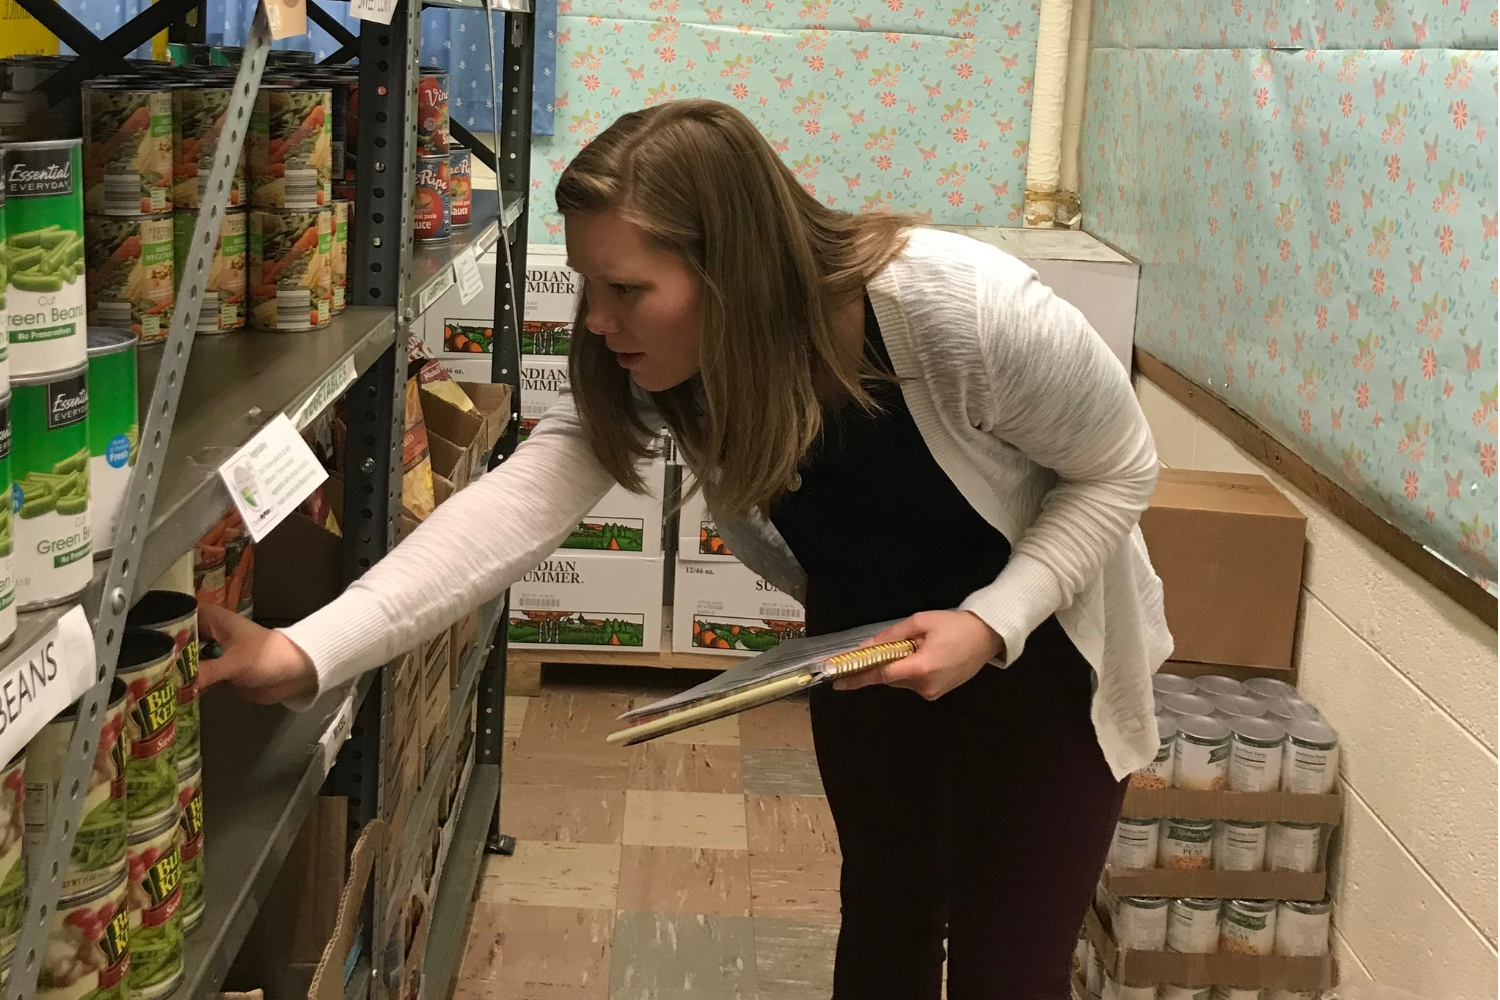 Extension works to end hunger for Illinois families